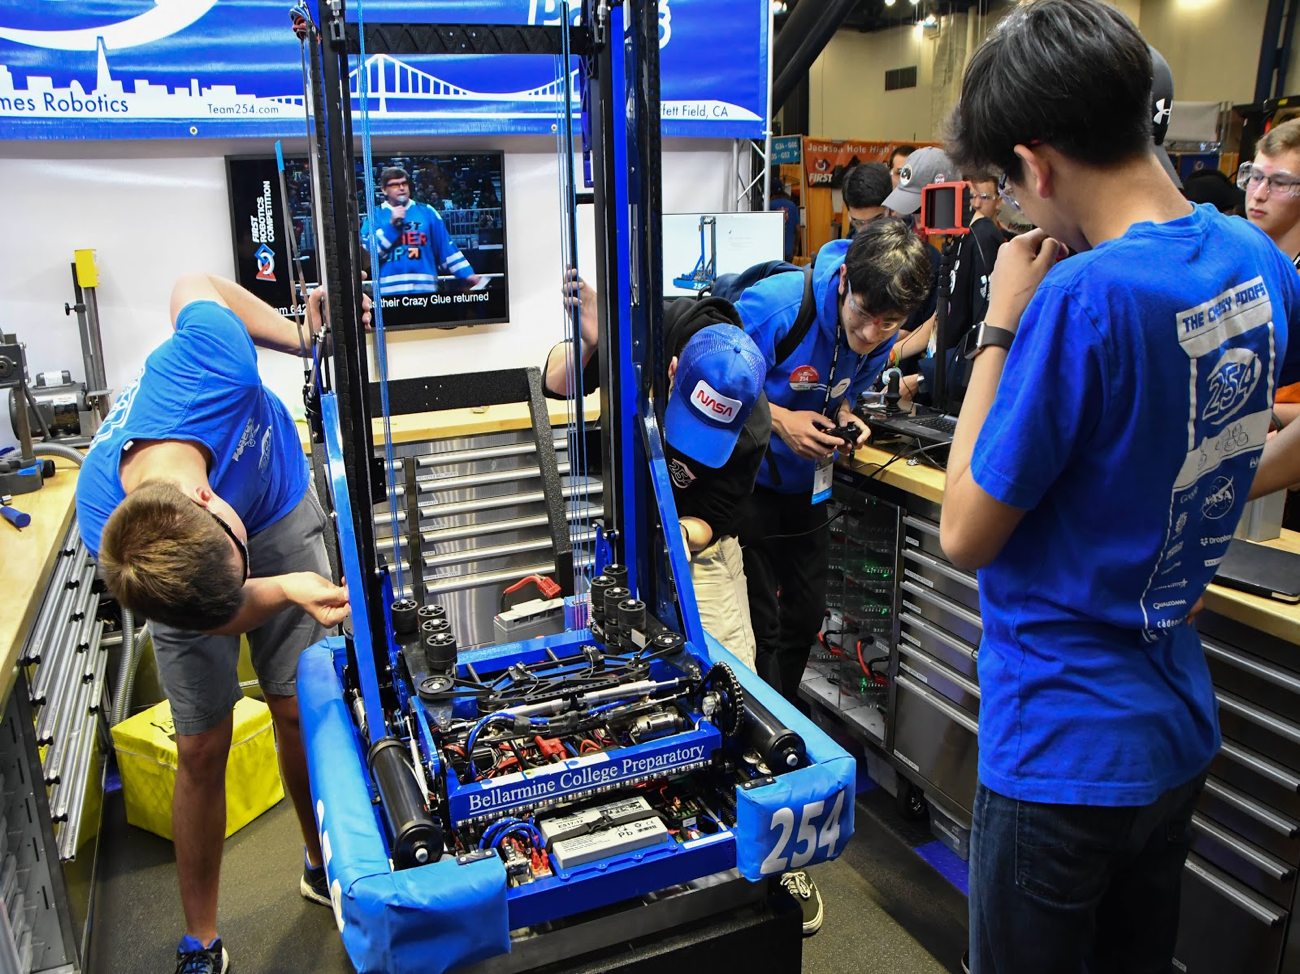 Members of the Team 254 Pit Crew repair Lockdown before an upcoming match